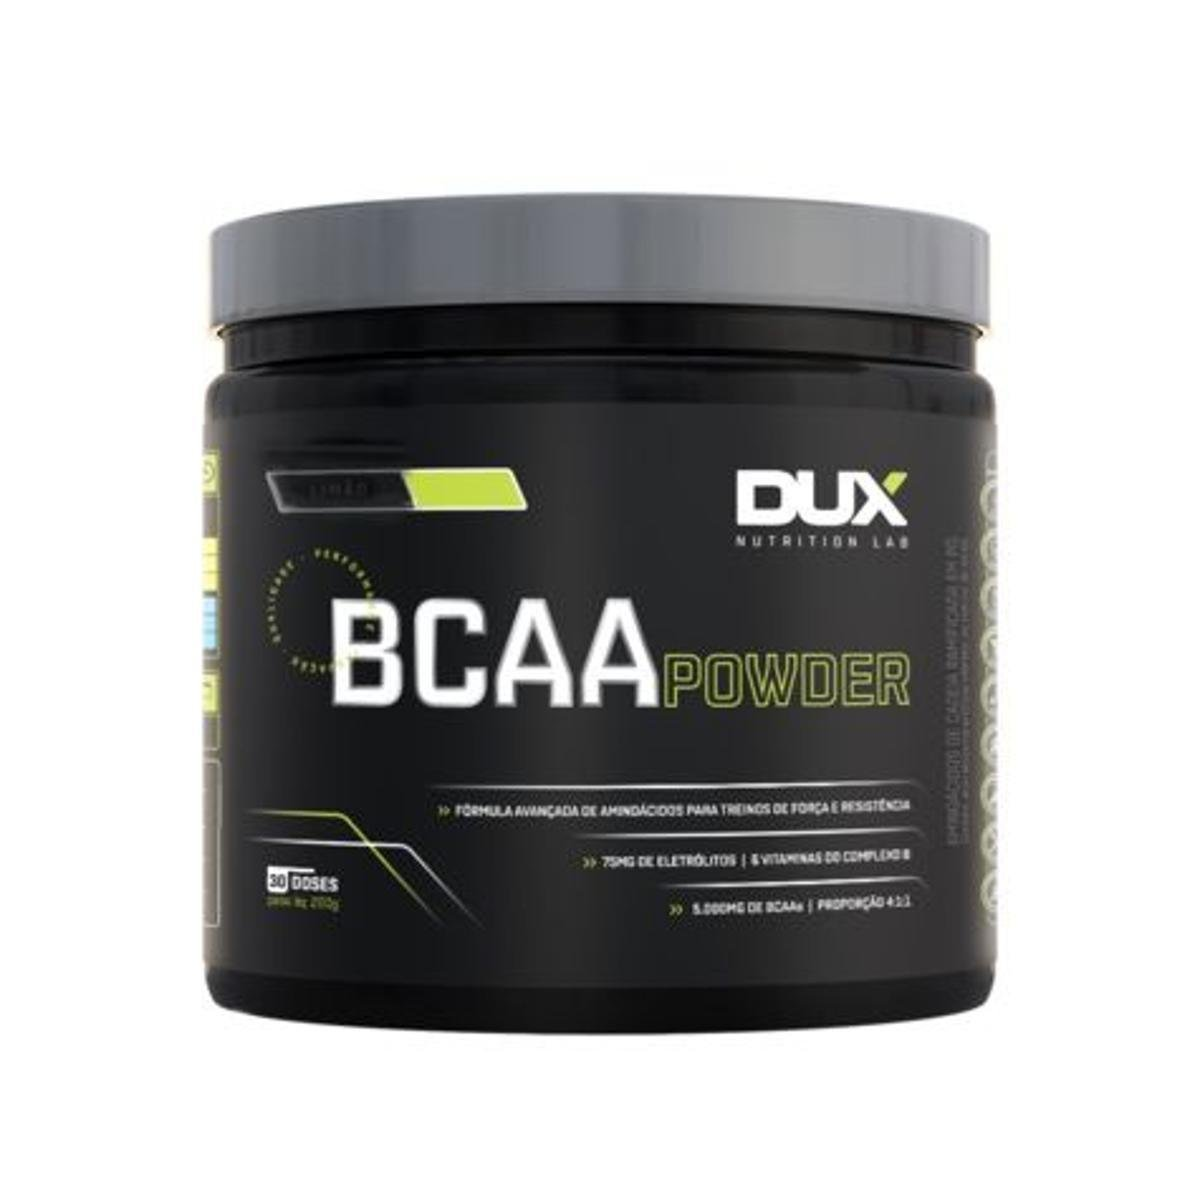 BCAA Powder - Pote 200g DUX NUTRITION